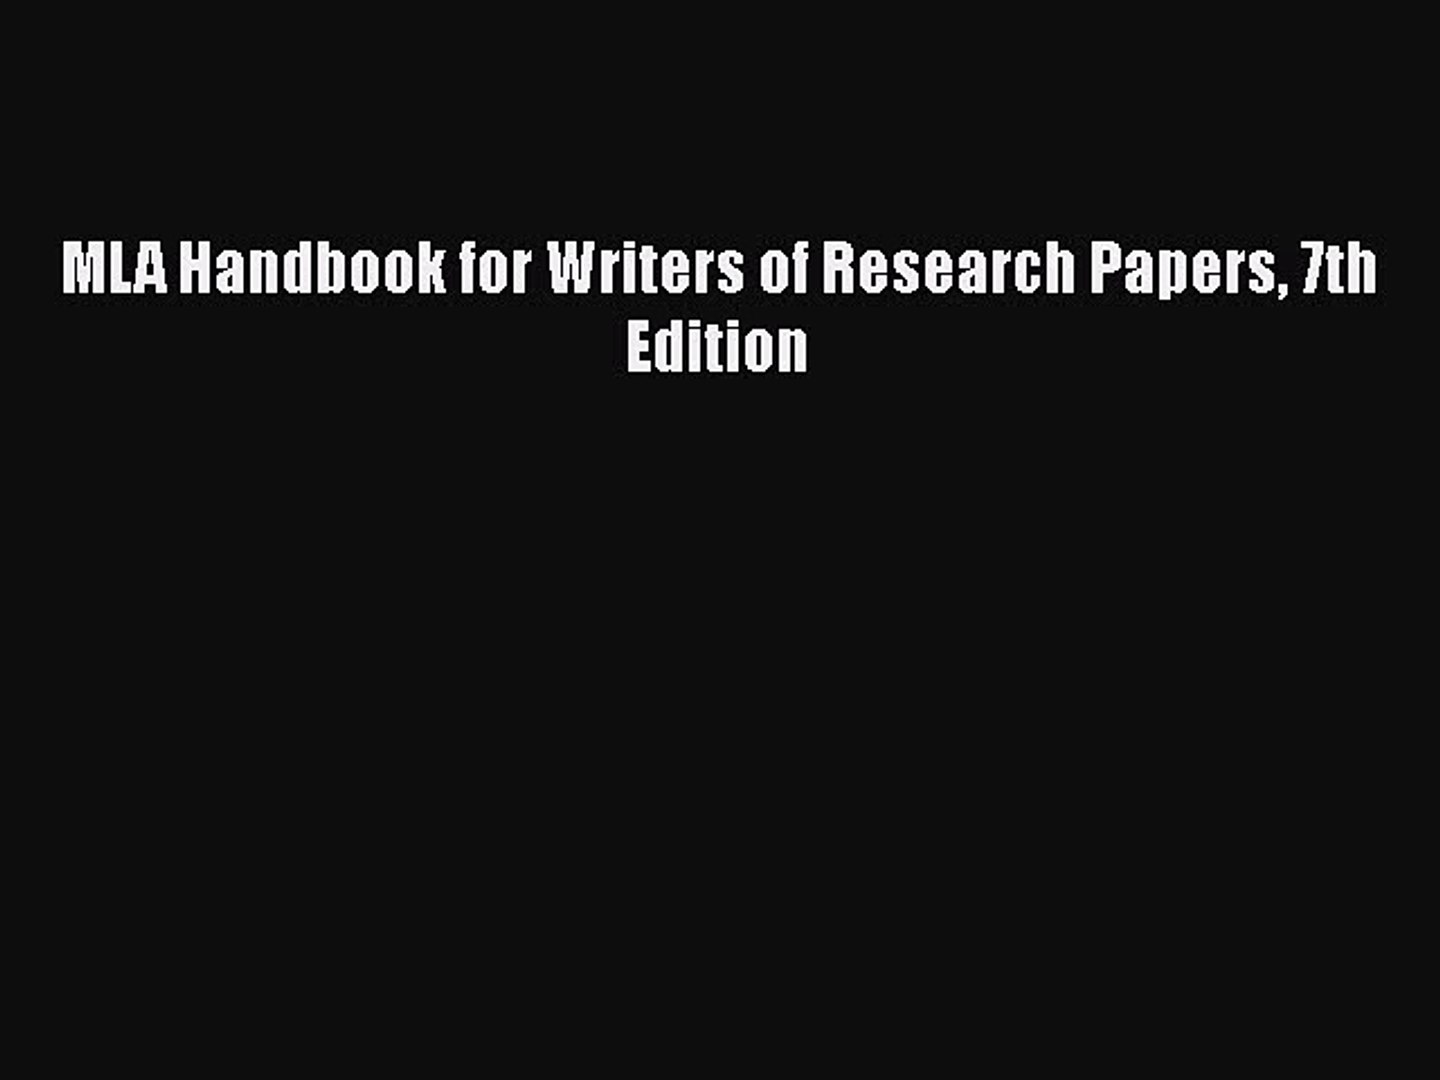 003 X1080 Zxg Mla Handbook For Writers Of Researchs 7th Edition Pdf Download Fearsome Research Papers Free Full